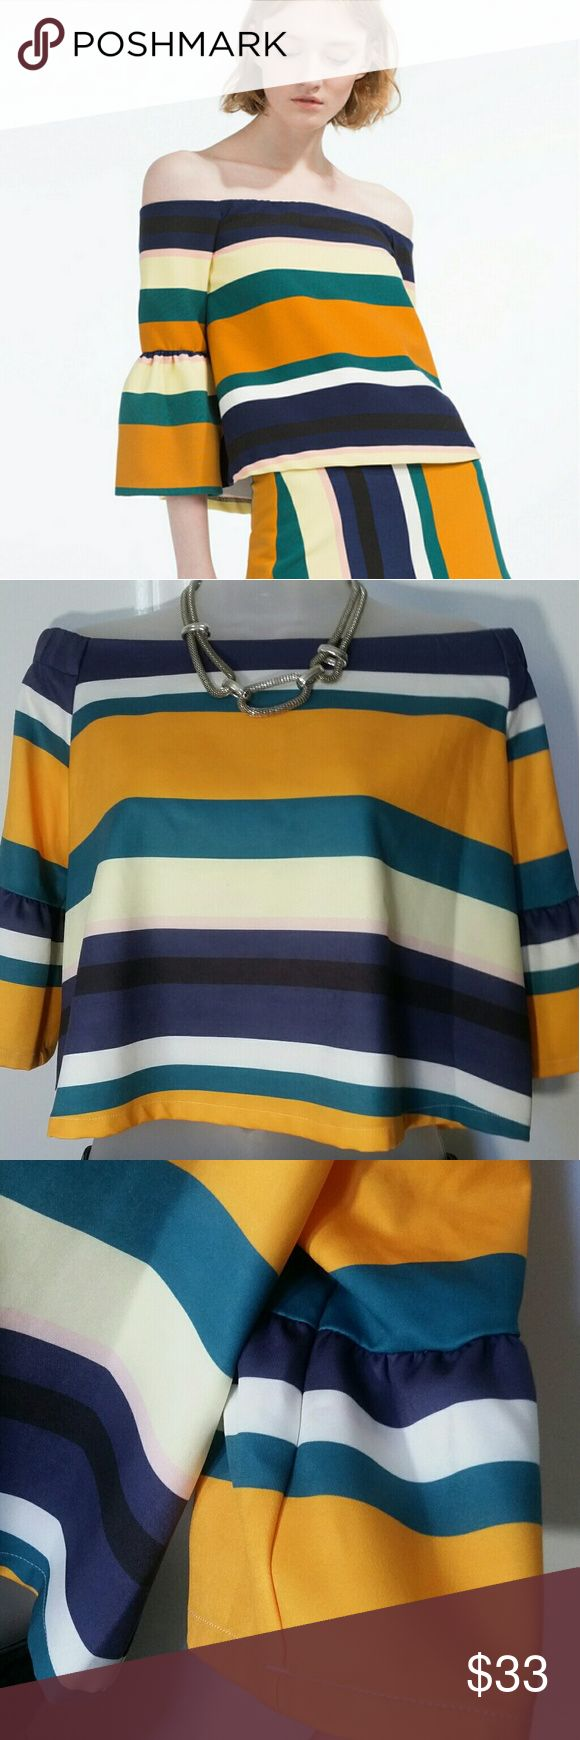 Off shoulder tops NWOT Yellow Gold, Navy Blue, Cream, Green & Multicoloured All Over Stripe Print Off The Shoulder Bardot Neckline Three Quarter Sleeve Frill Cuff . Size large but fit meduim. Good conditions . Color exactly in the pictures Tops